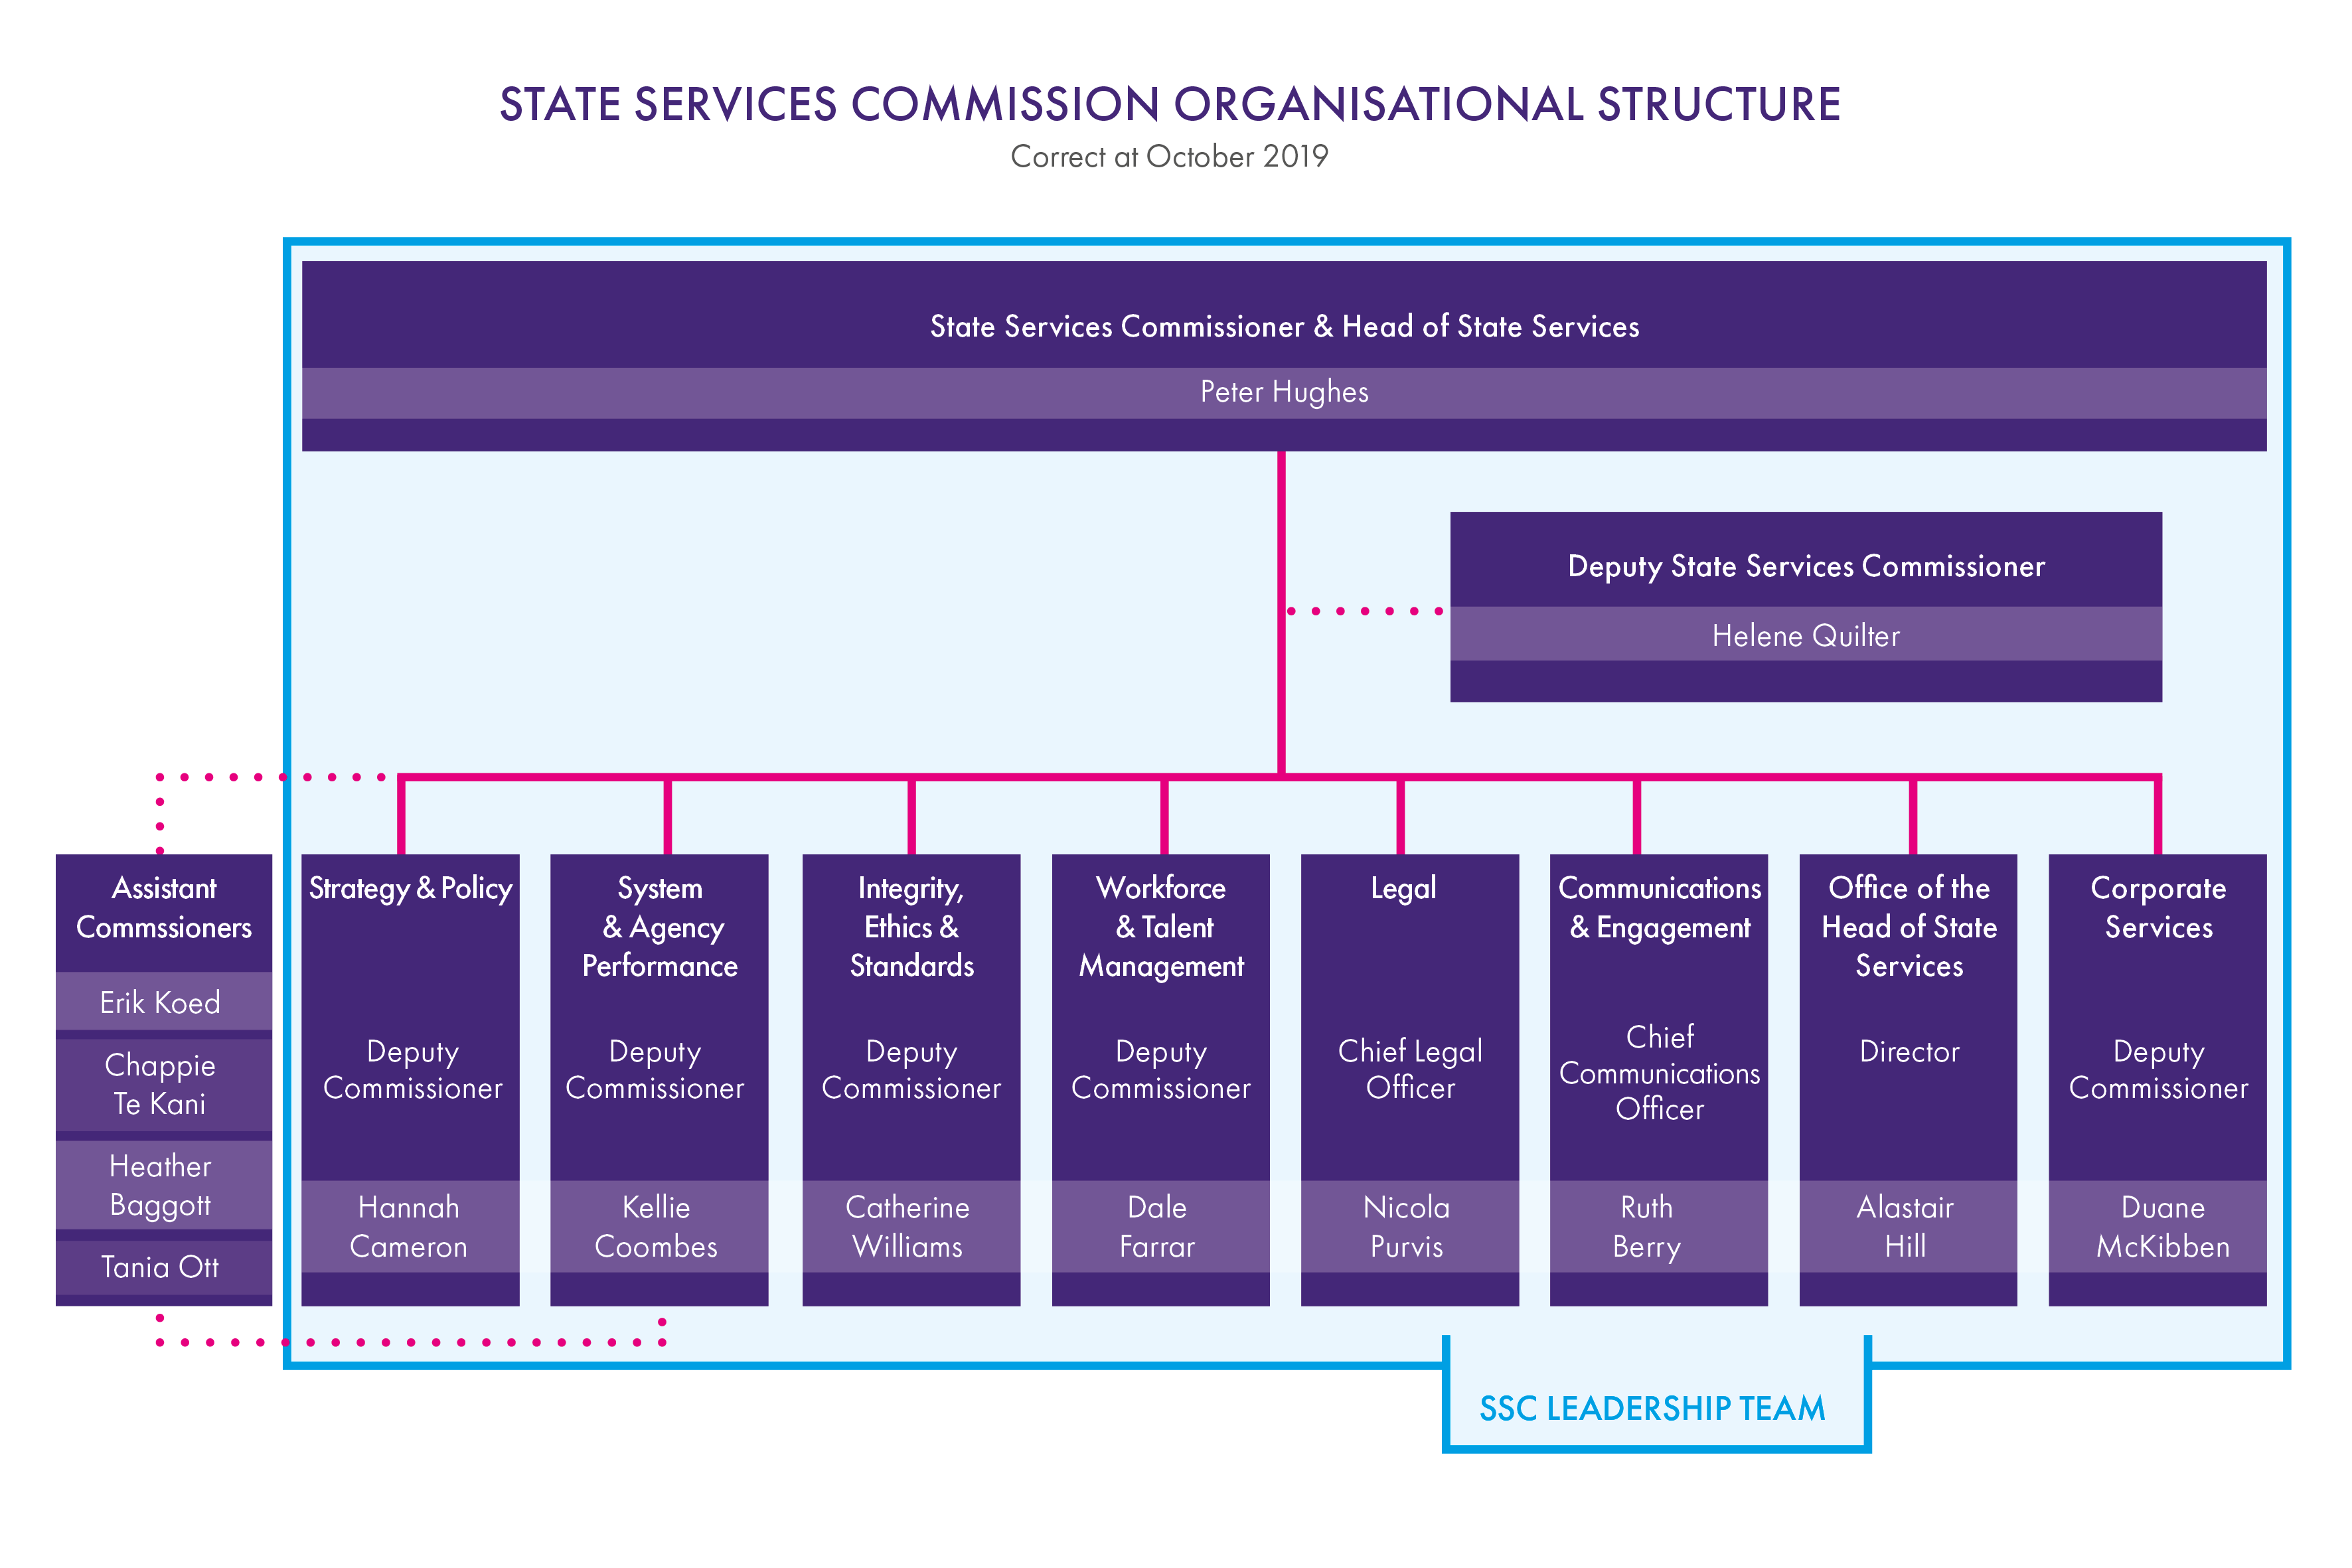 SSC Organisational Structure Senior Managers Chart